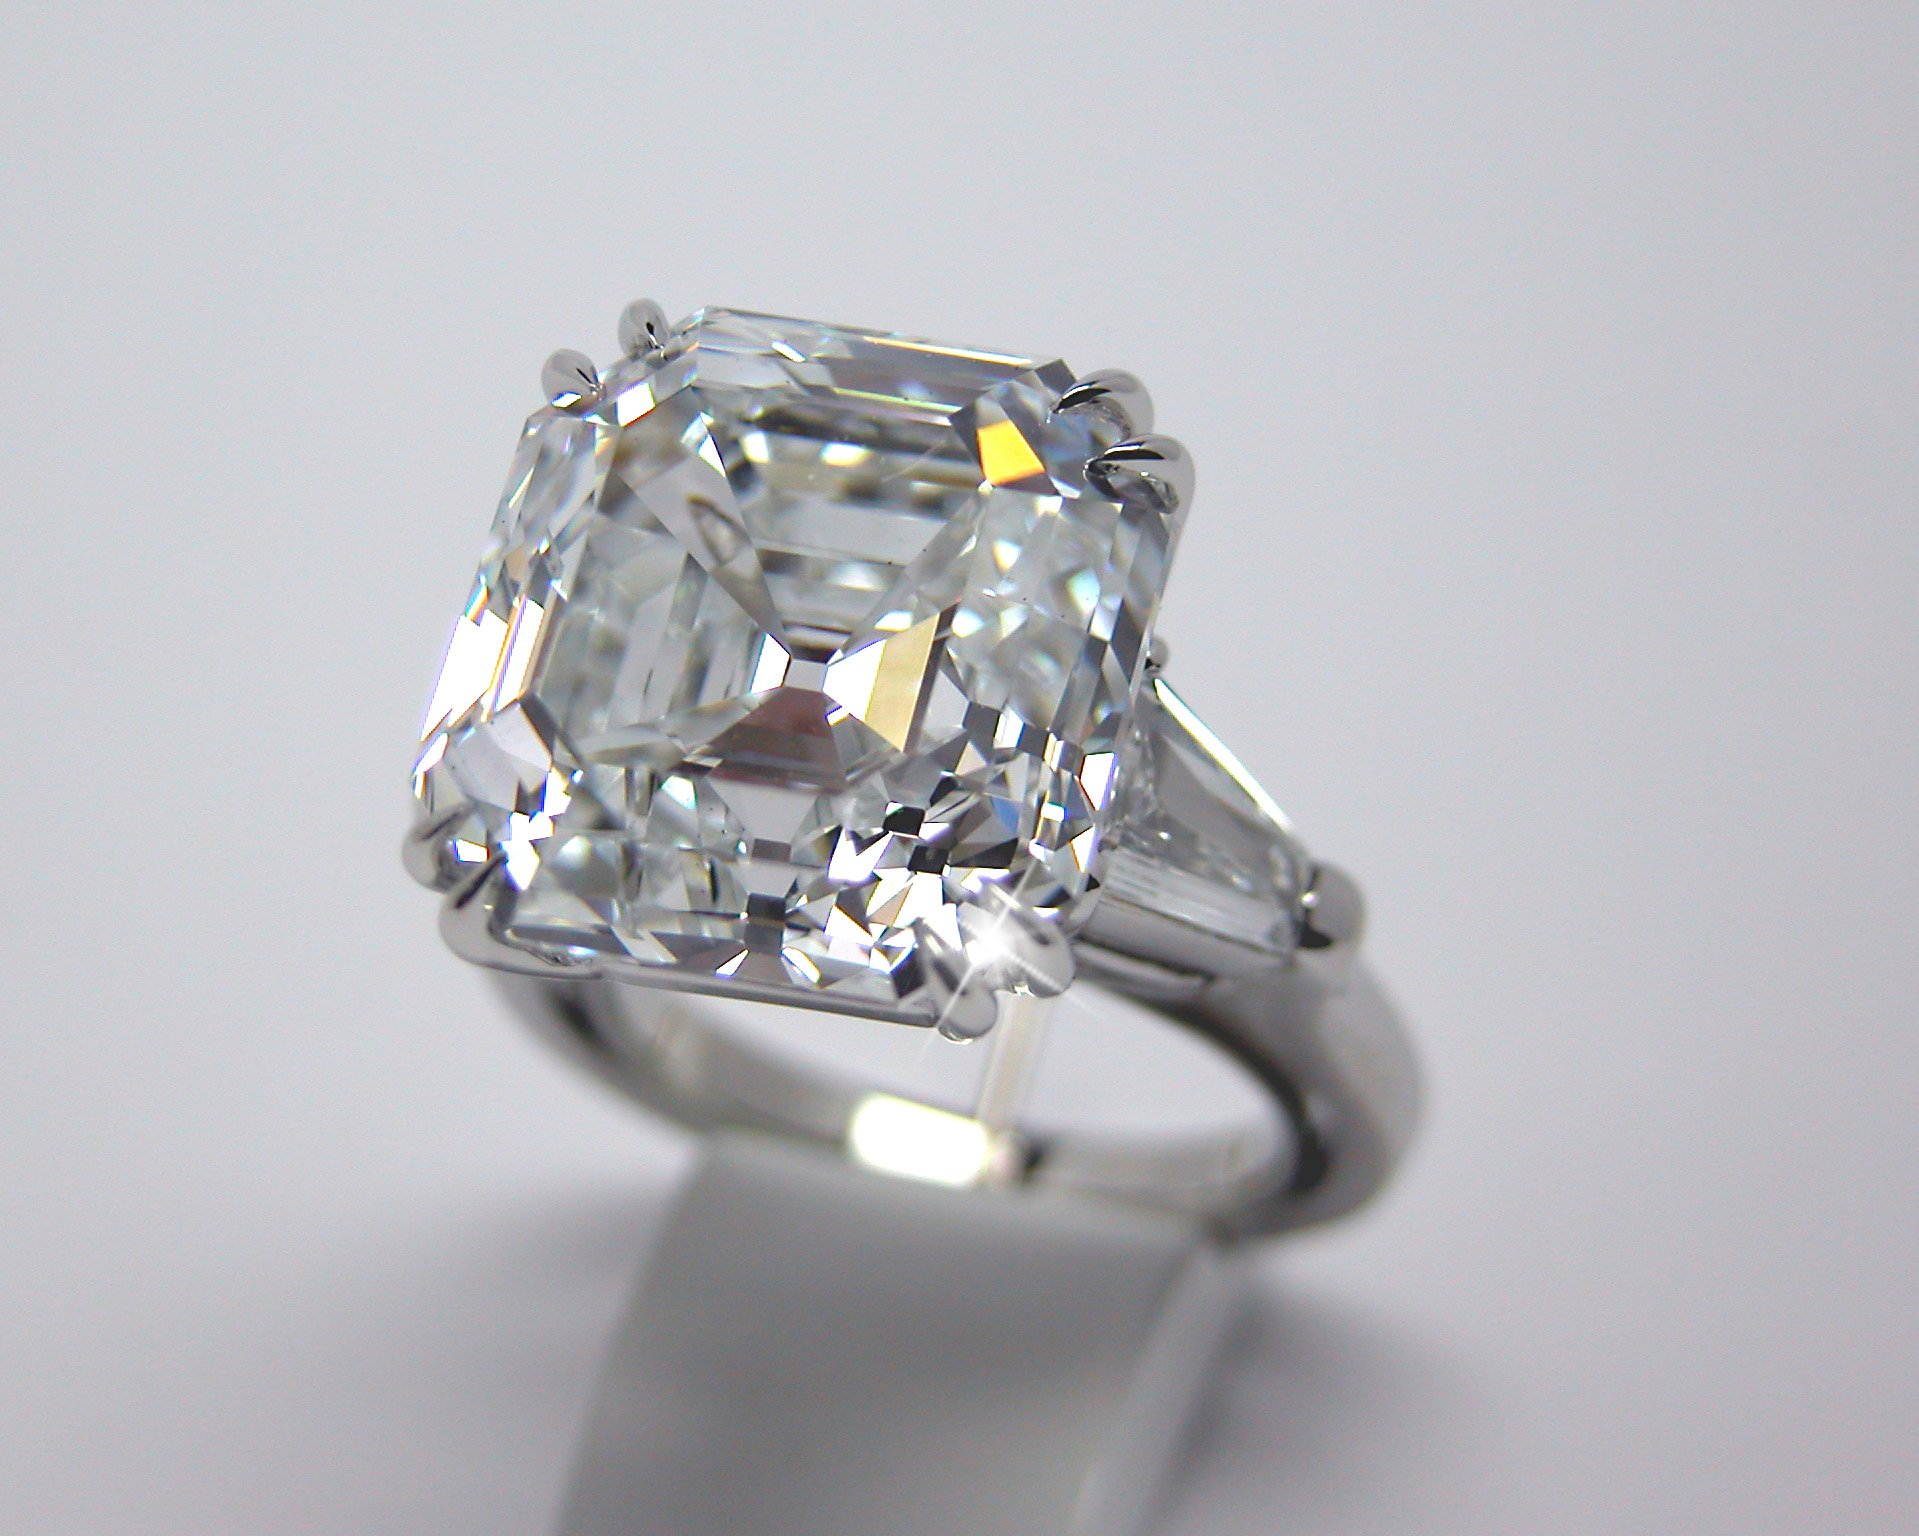 e diamond rose rings asscher eco friendly cut white gold order product made topaz p engagement pytell ring theresa jewelry alternative to